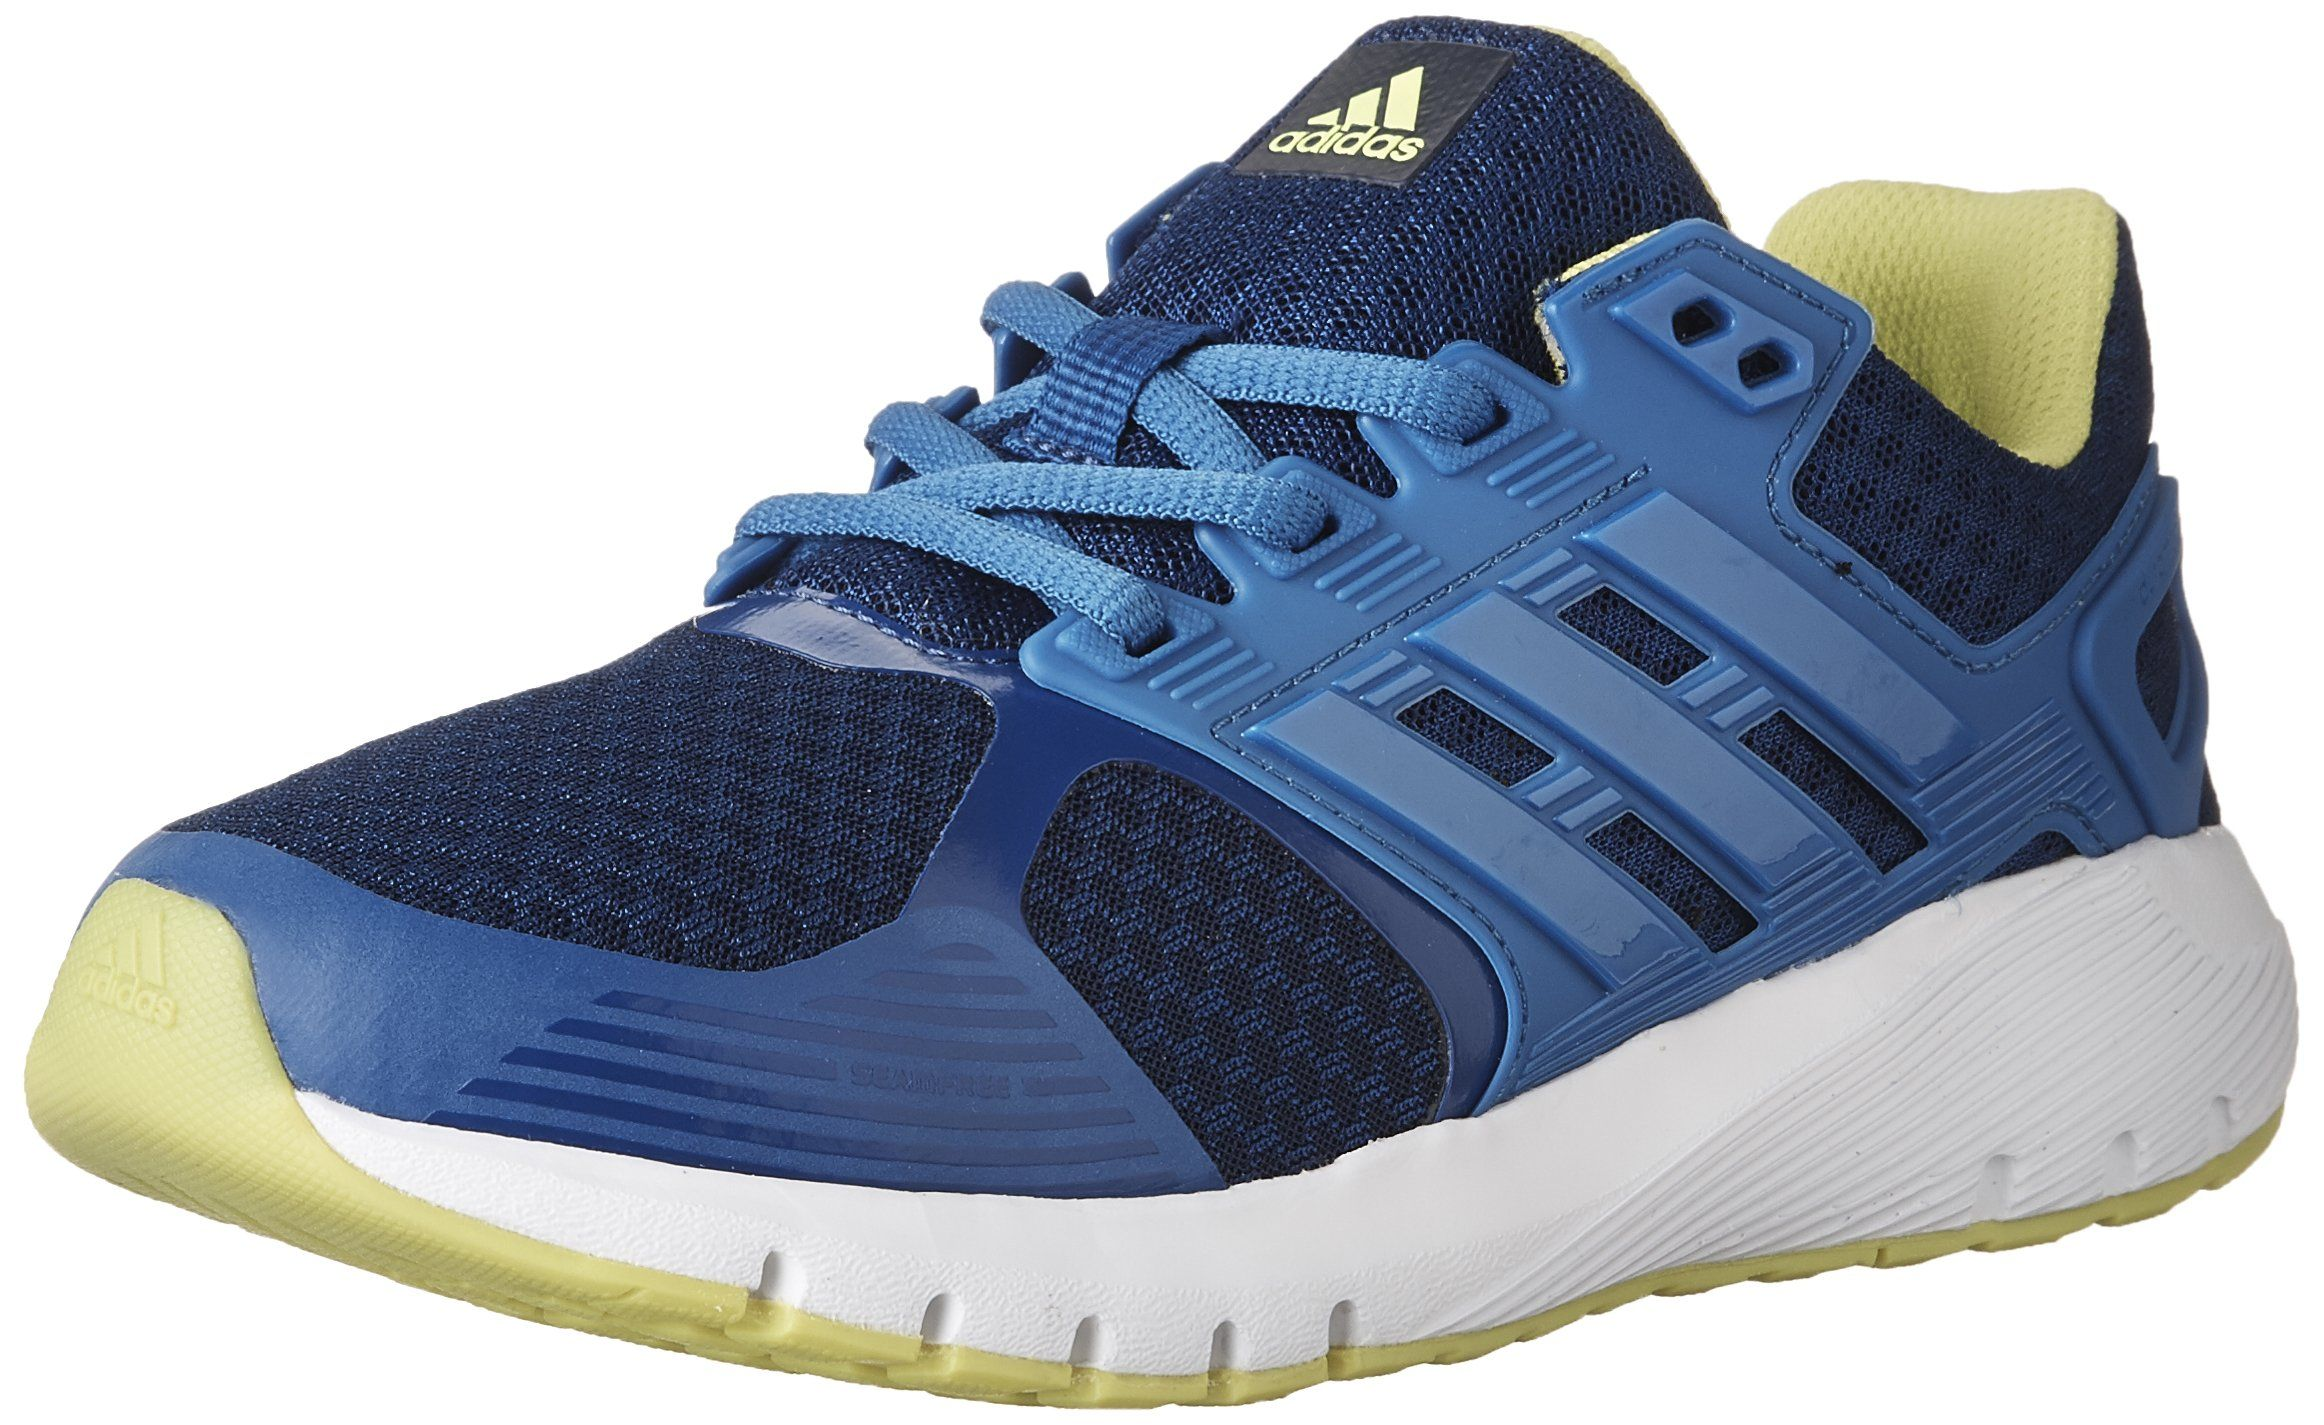 best service 7e026 d5c1f adidas Performance Kids  Duramo 8 K Running Shoe. Air mesh upper for  maximum breathability